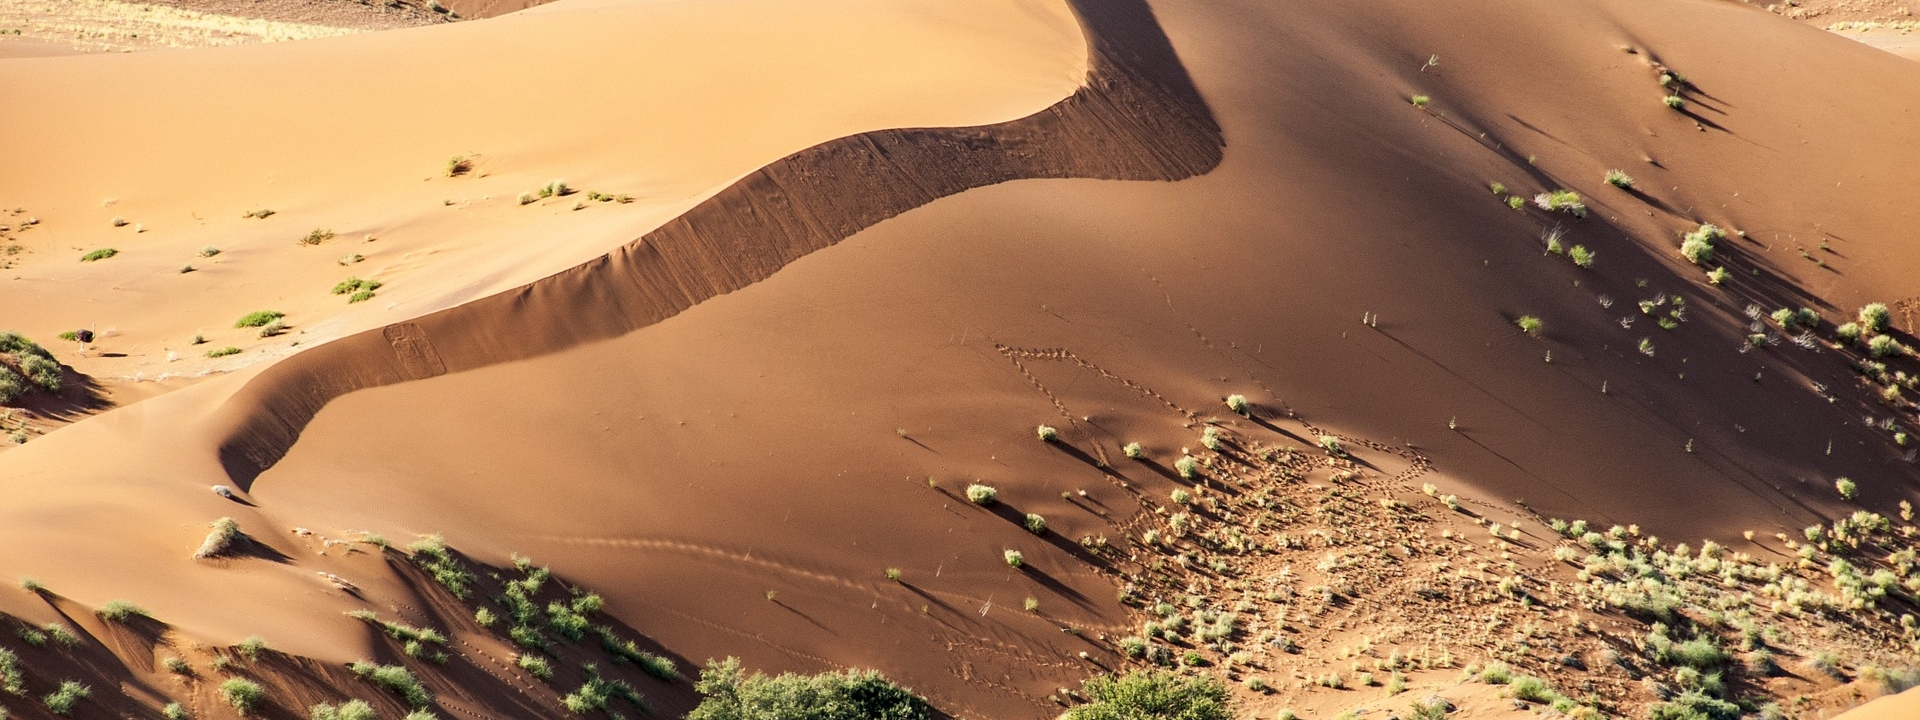 How are the semi-arid regions of Africa and Asia adapting to climate change?